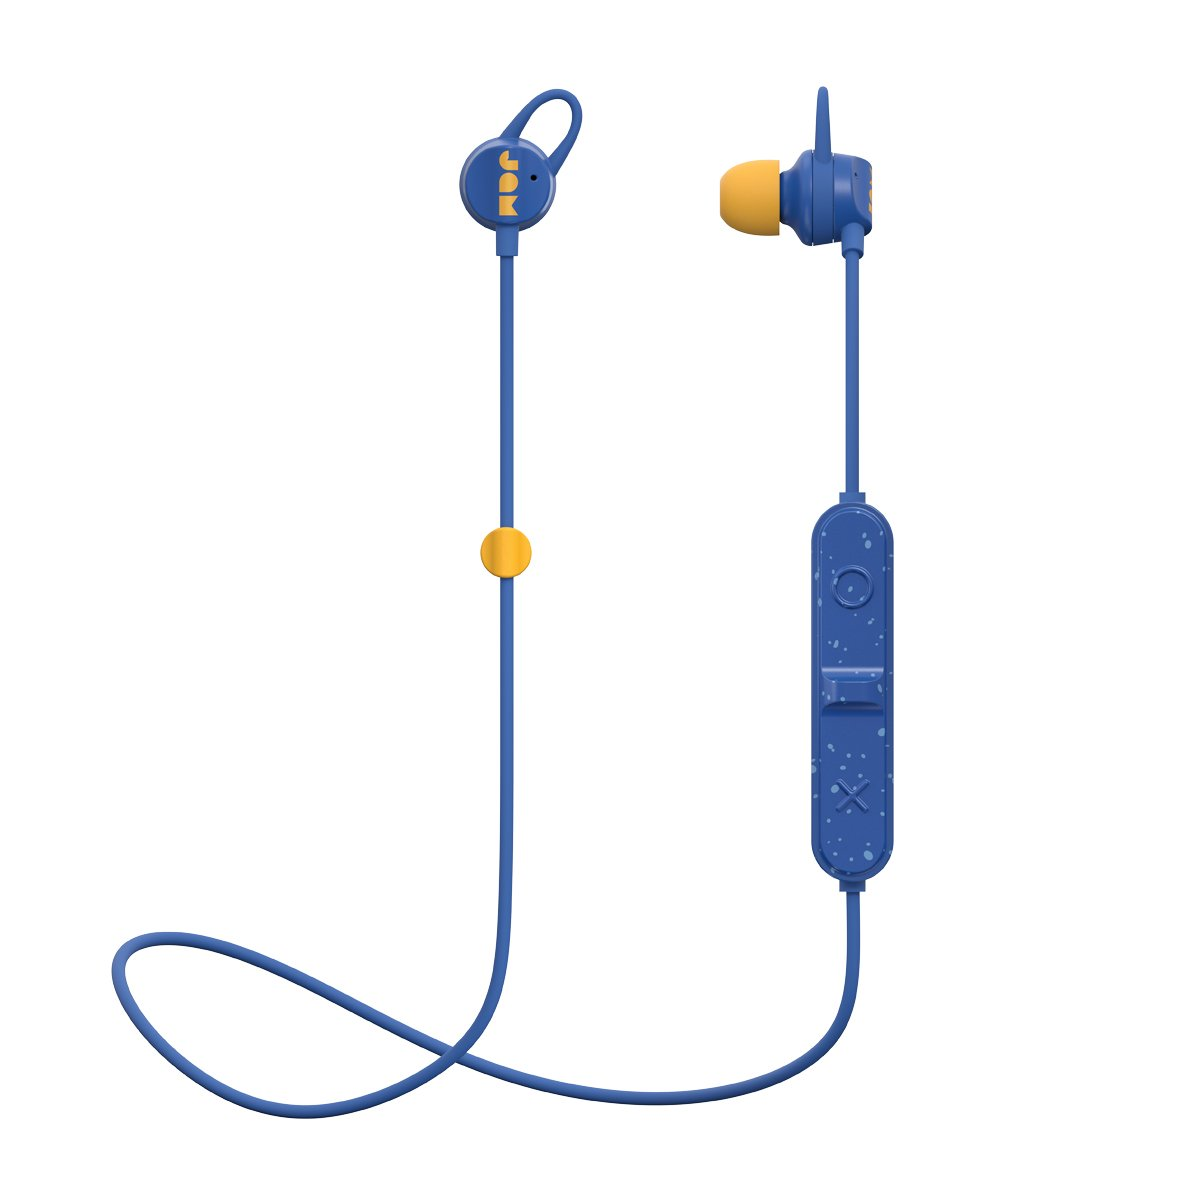 Sweat Resistant Wireless Bluetooth Earbuds 6 Hour Playtime, Hands-Free Calling, Magnetic Cord Management, Lightweight Design JAM Live Loose Sport Headphones Blue